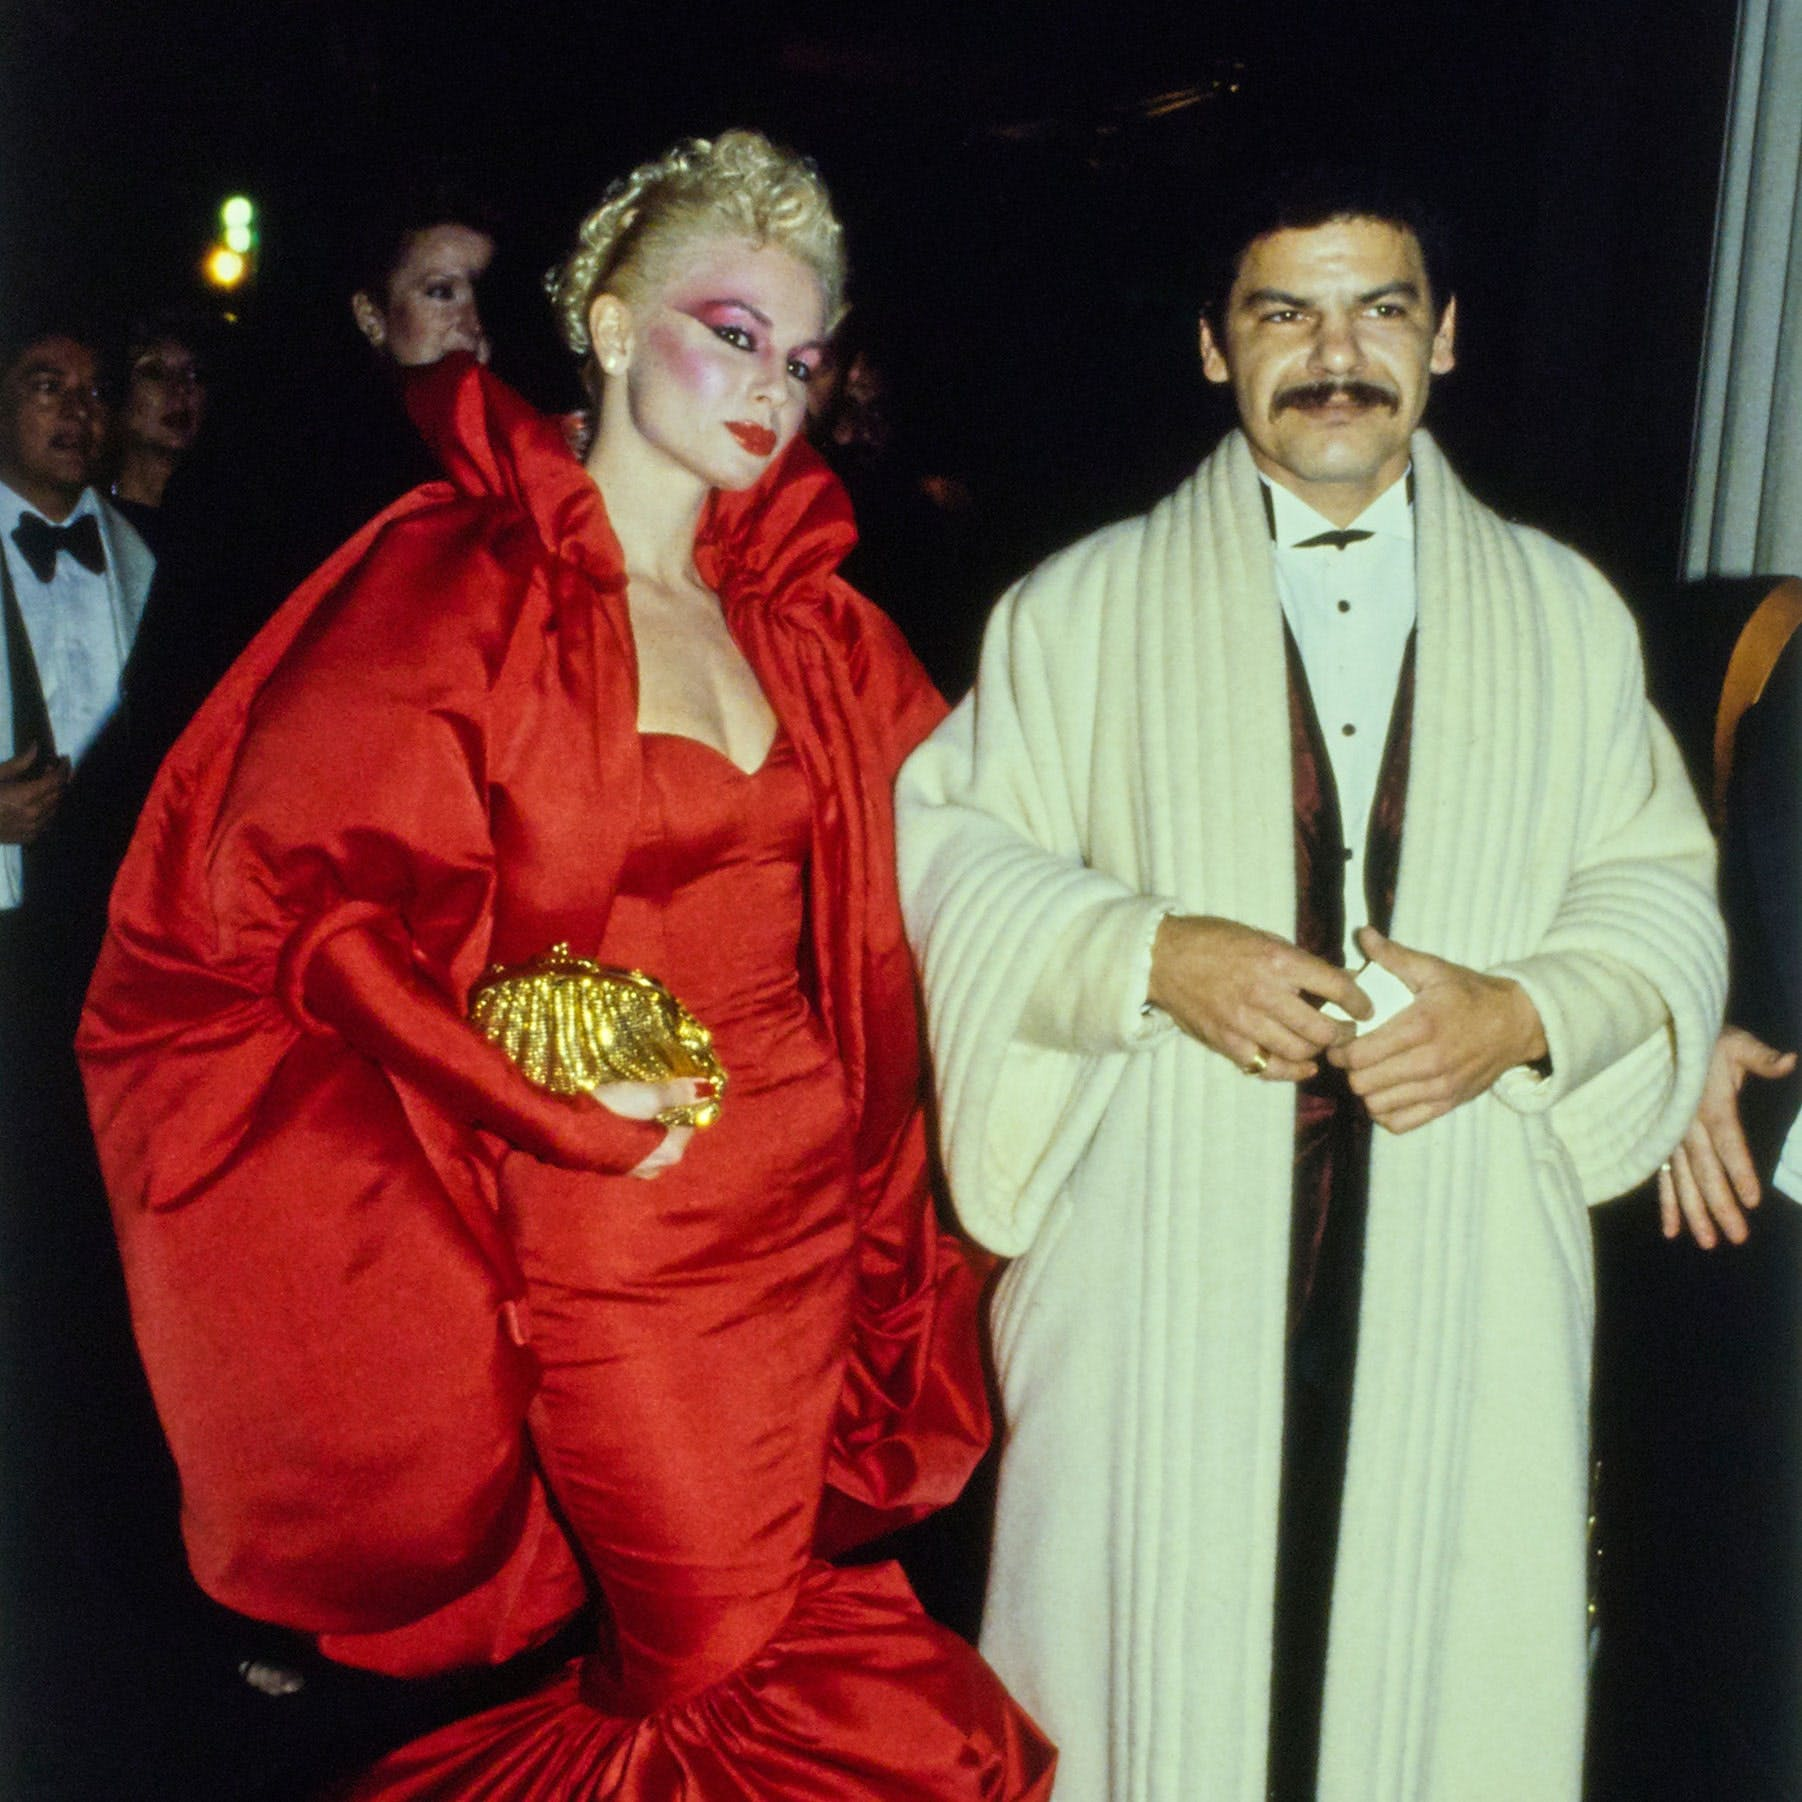 Val LeGaspi in a Larry LeGaspi dress and Thinsulate-lined coat with her husband Larry LeGaspi at the 1979 Met Gala.